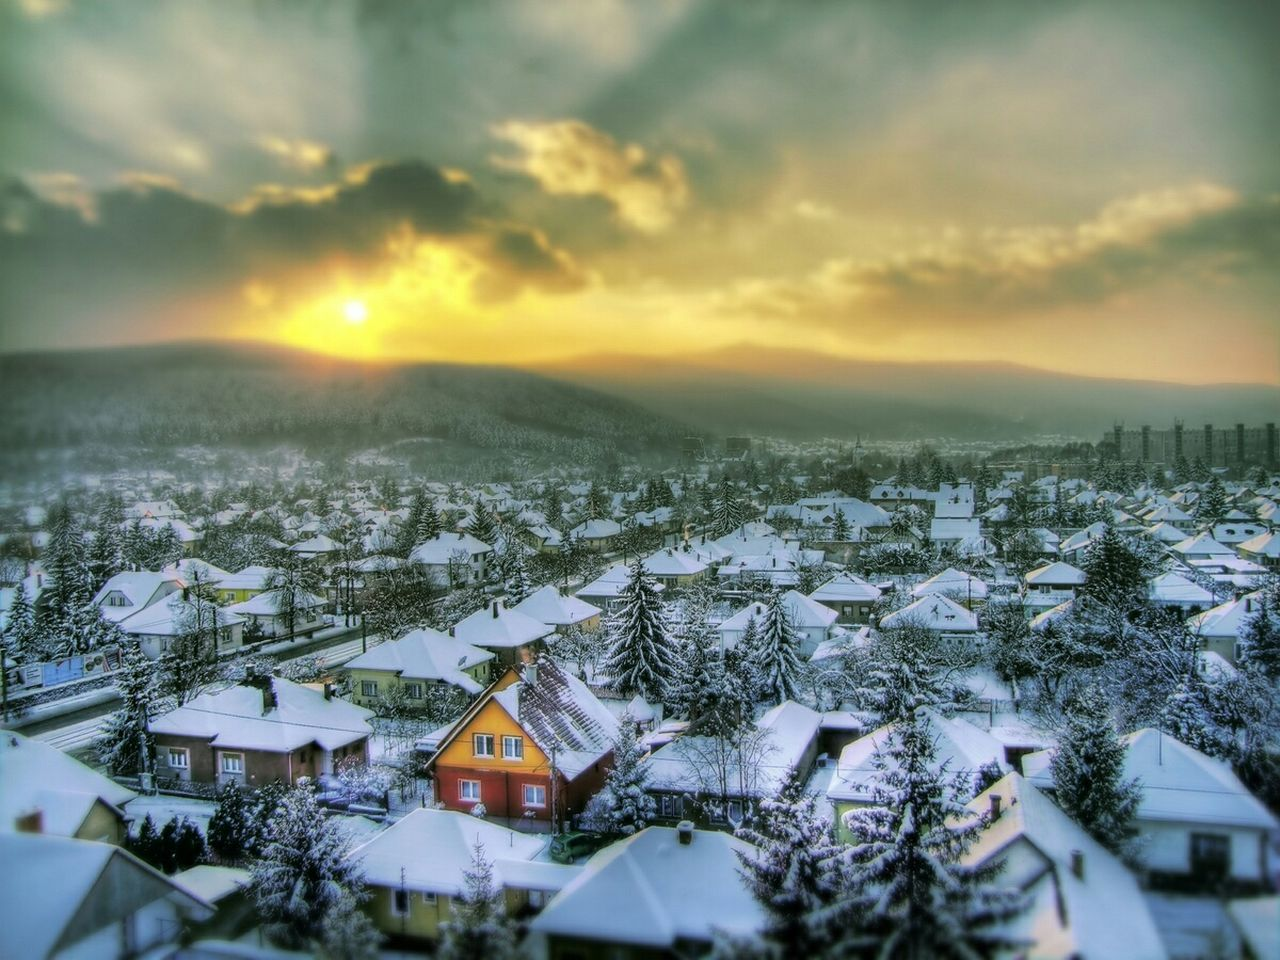 High Angle View Of Snow Covered Residential District Against Sky During Sunset